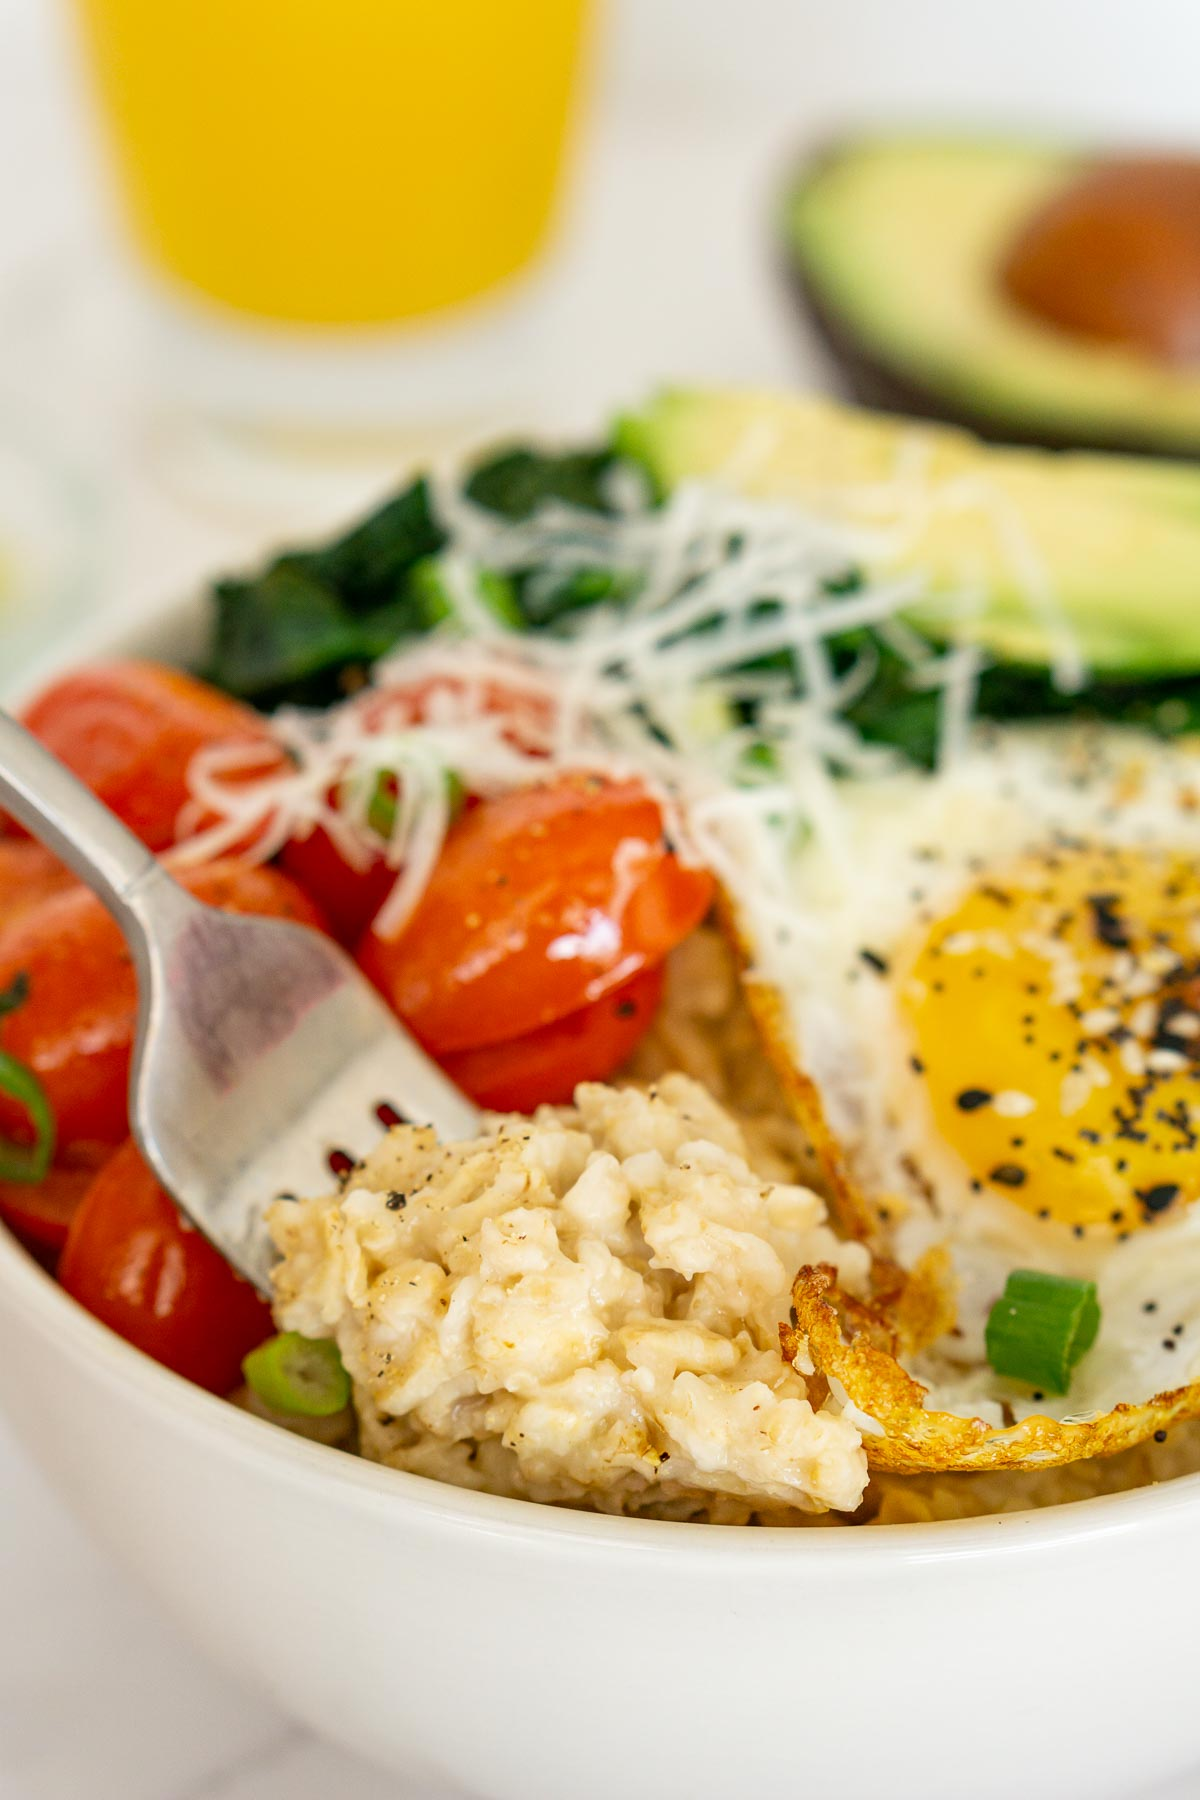 Savory oatmeal with eggs and veggies in a bowl.